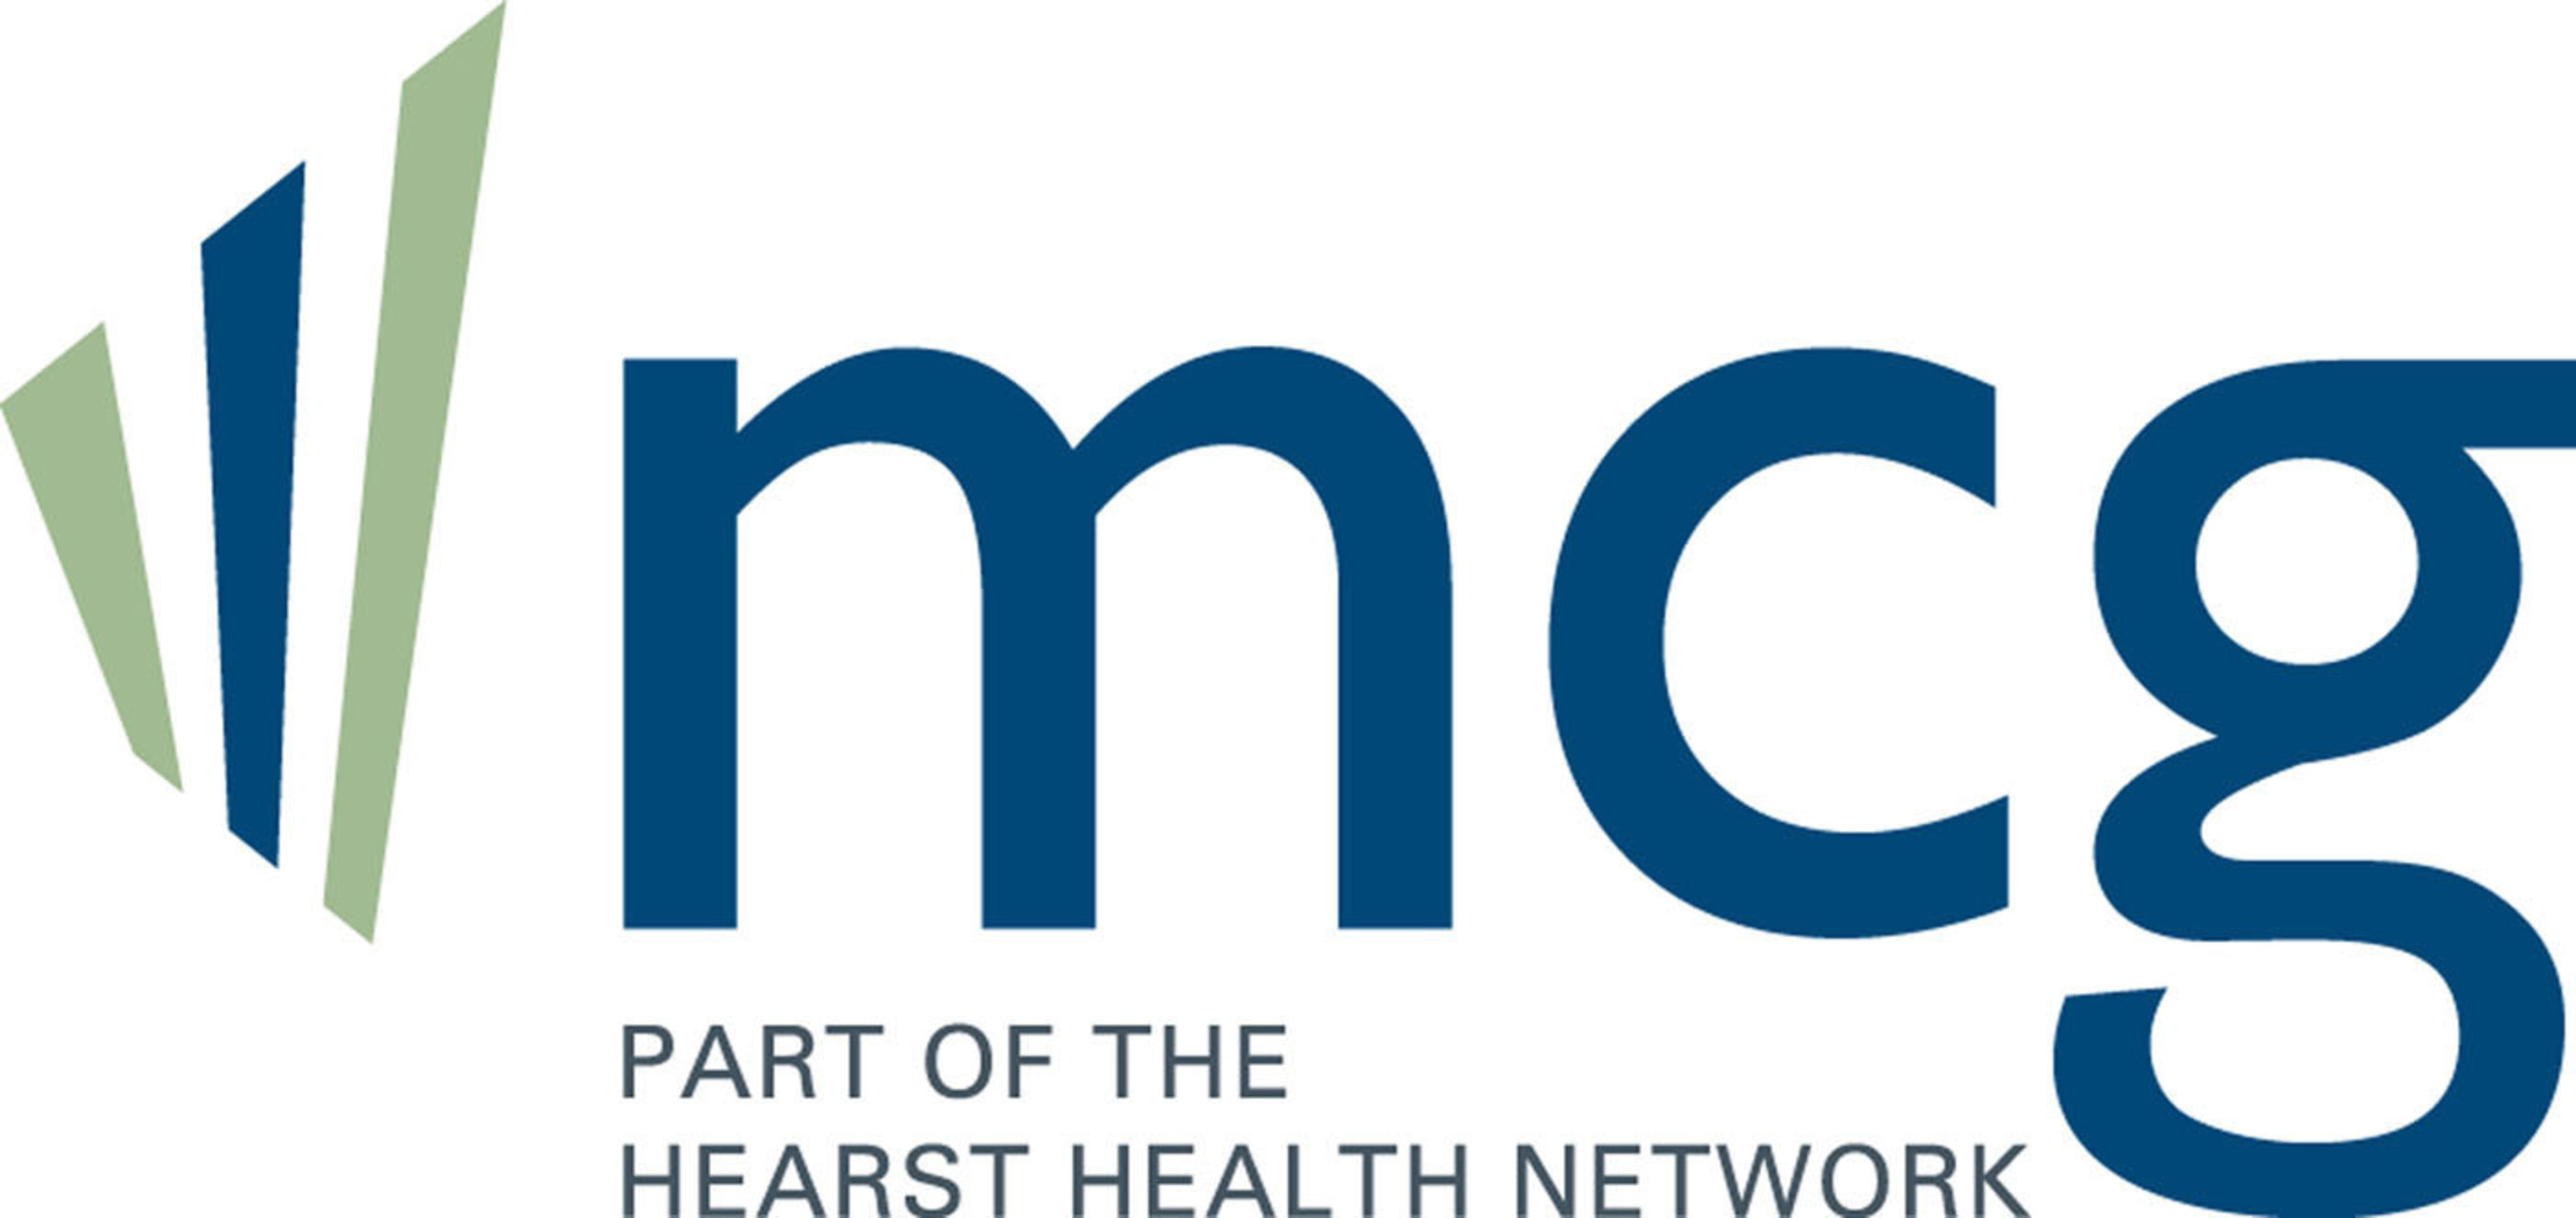 MCG, part of the Hearst Health network.